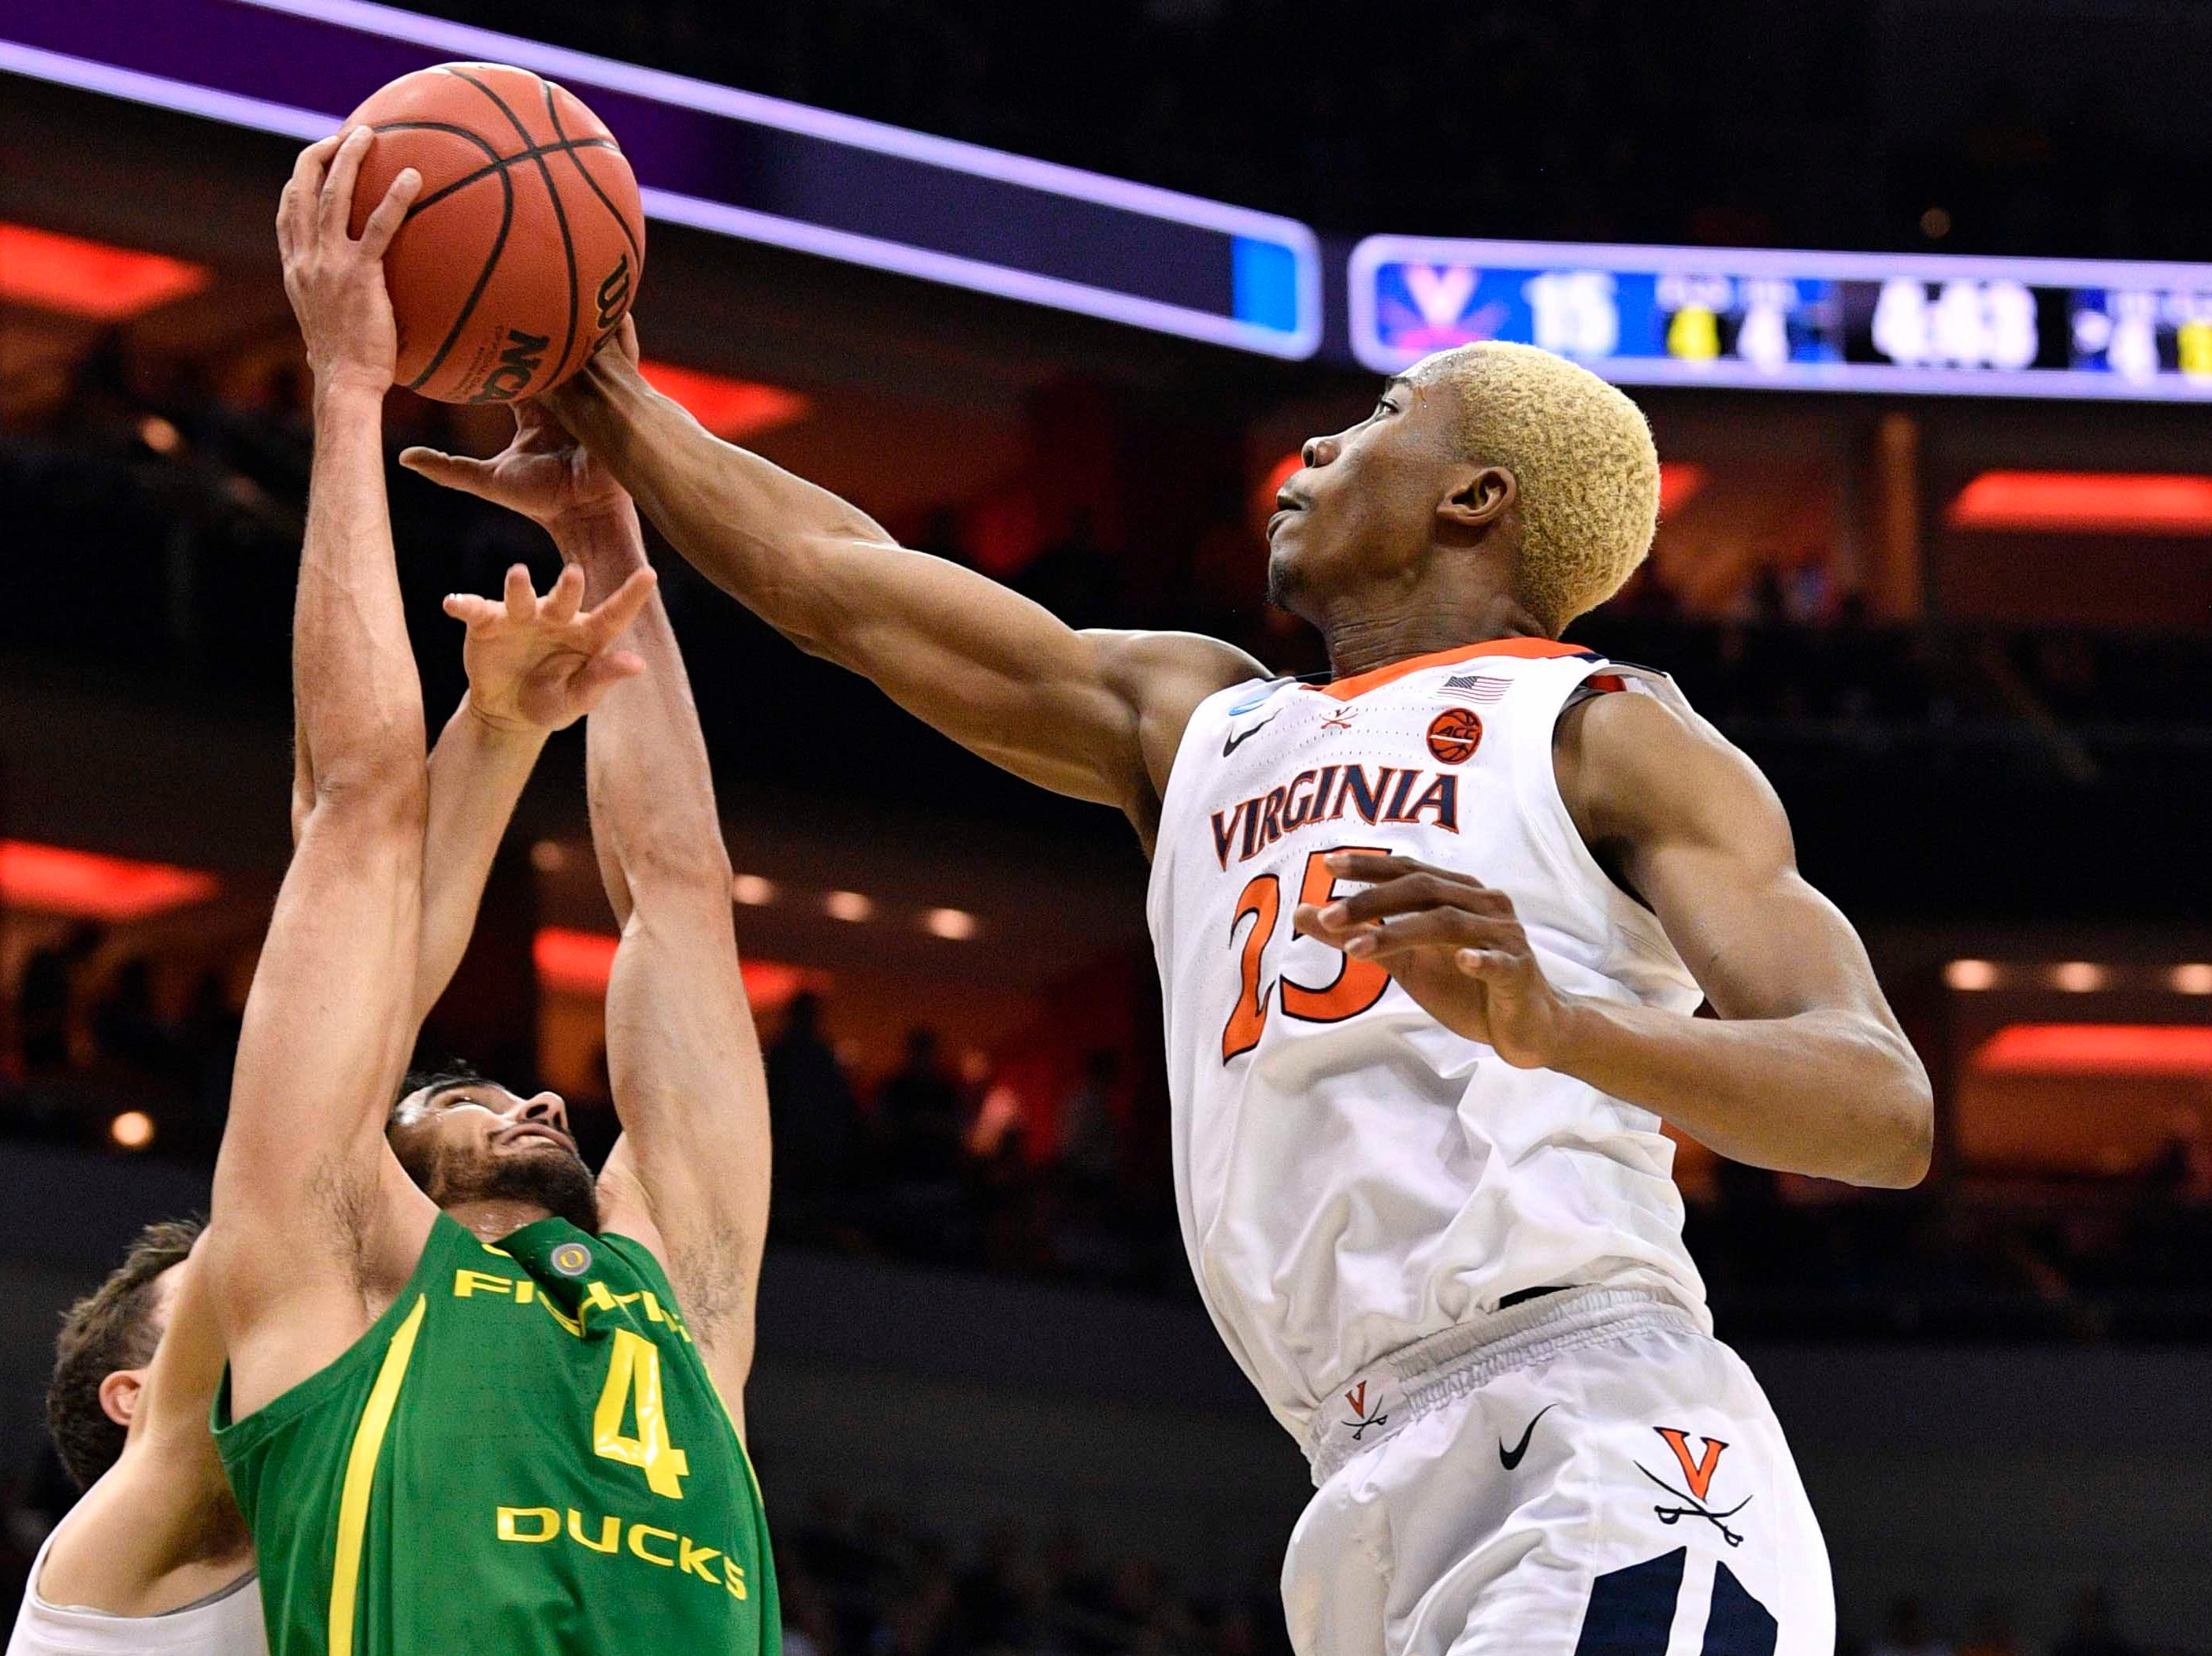 Sweet 16: Oregon Ducks guard Ehab Amin and Virginia Cavaliers forward Mamadi Diakite reach for the ball.